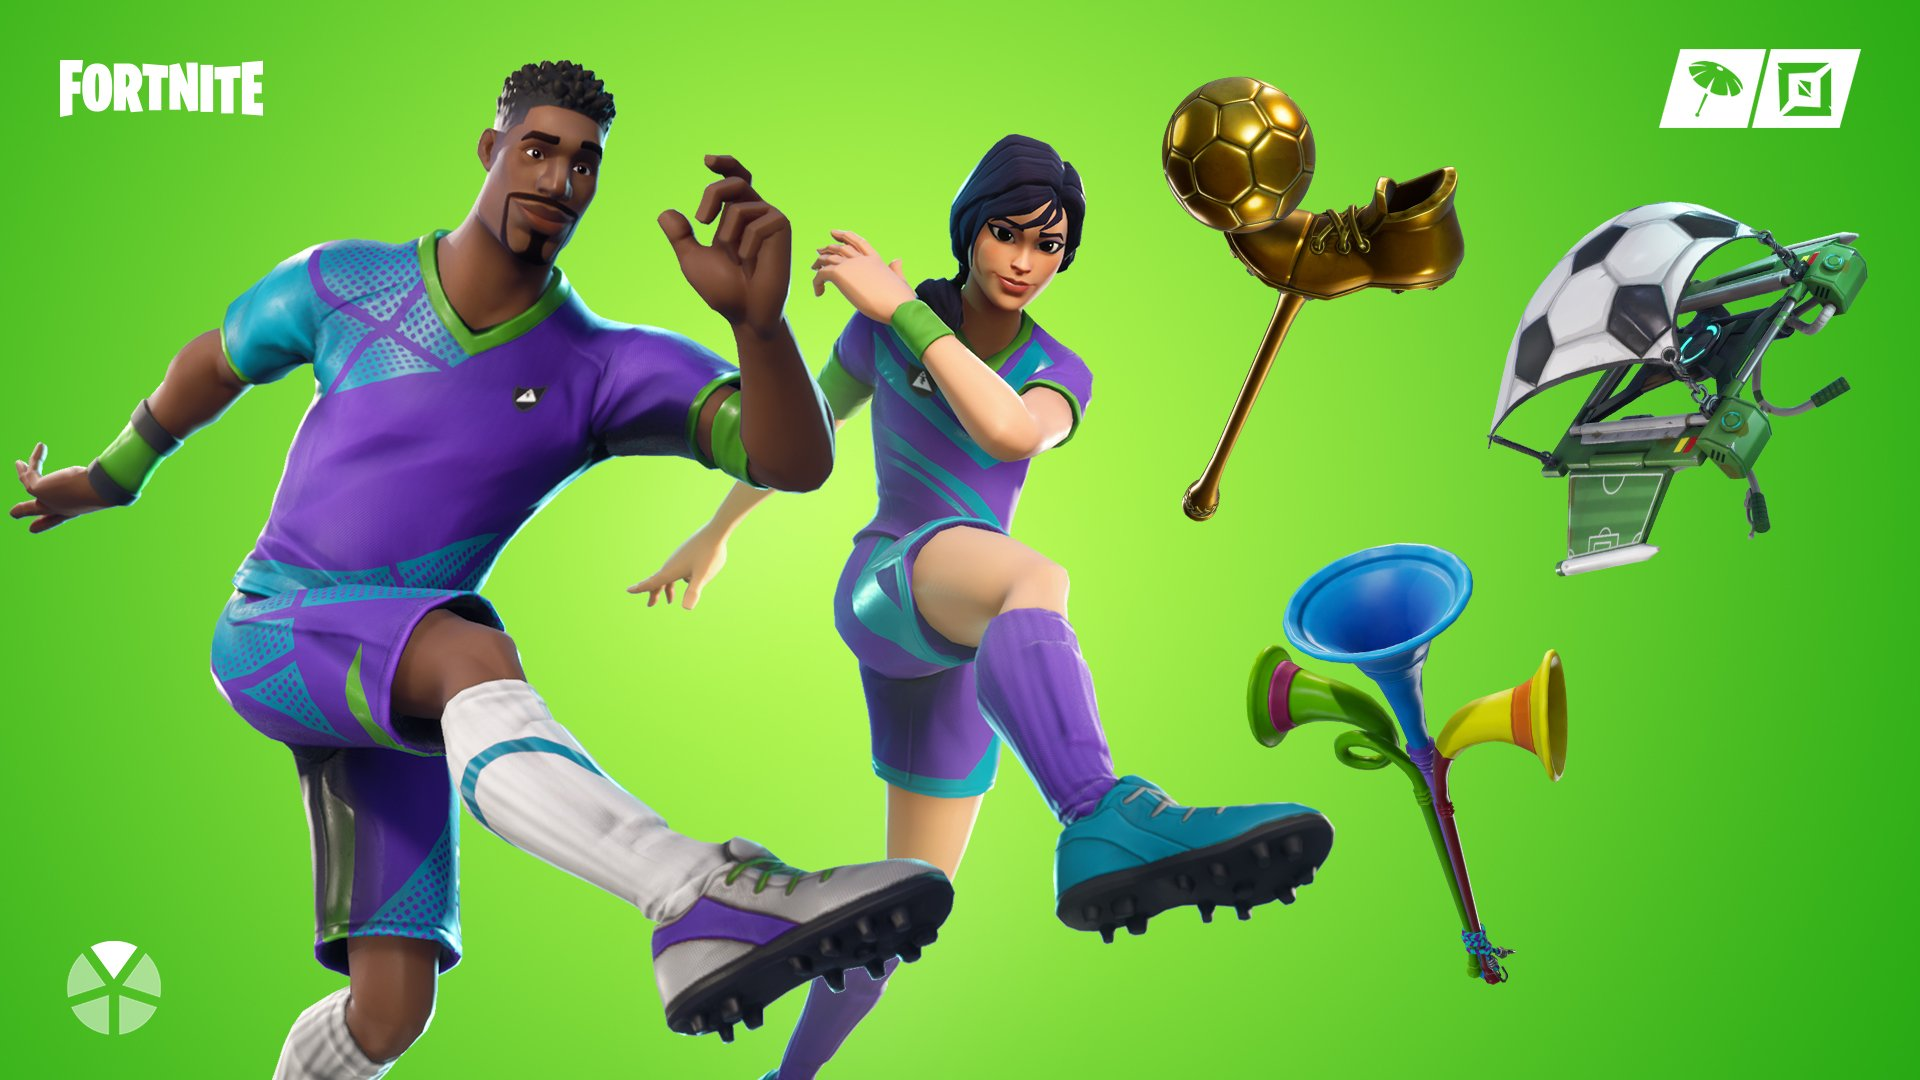 Fortnite Soccer Skins Wallpapers Supertab Themes